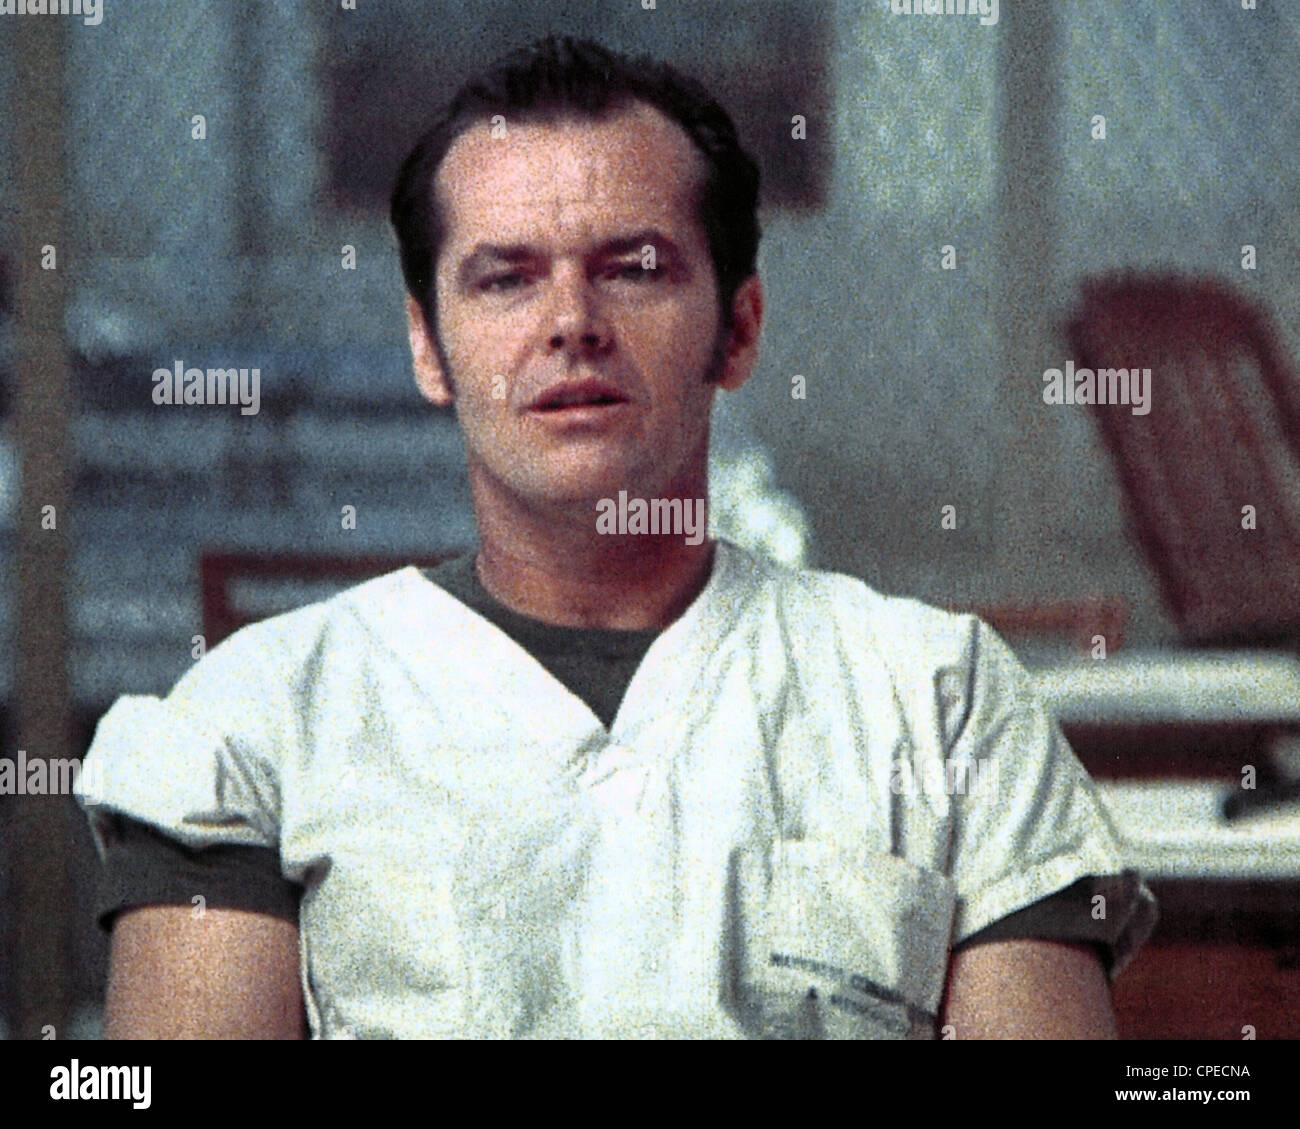 ONE FLEW OVER THE CUCKOO'S NEST 1975 United Artists film with Jack Nicholson - Stock Image